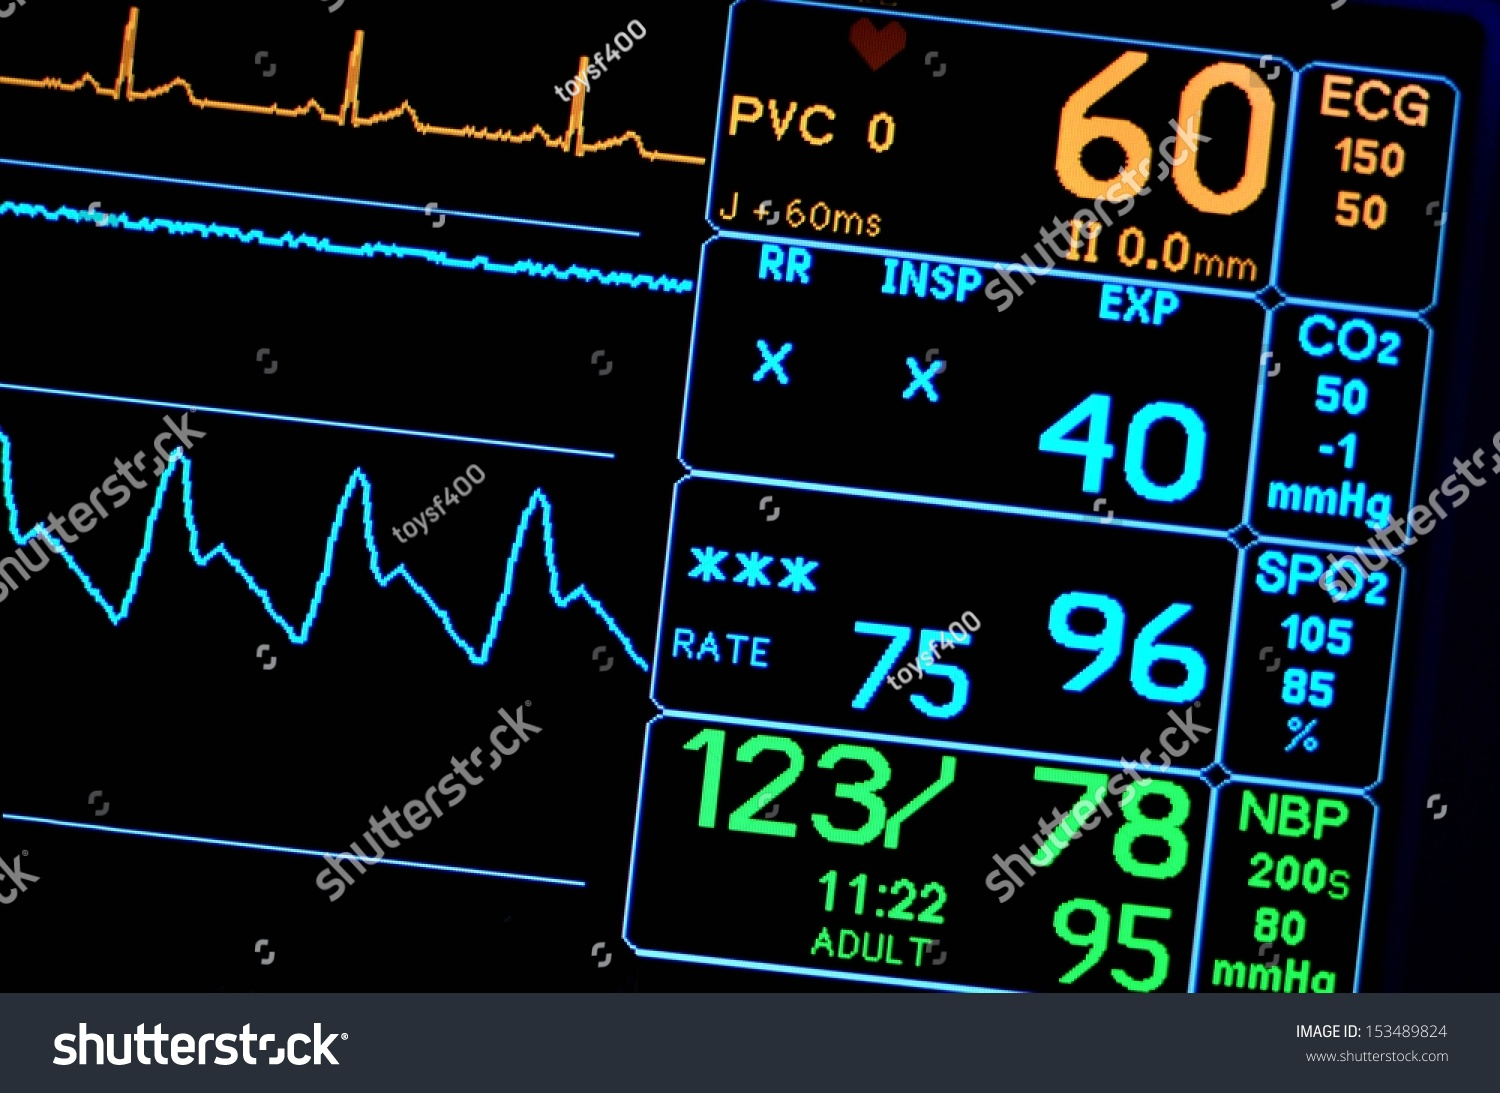 vital sign A practical guide to clinical medicine  it can provide important information about cardio-pulmonary dysfunction and is considered by many to be a fifth vital sign.